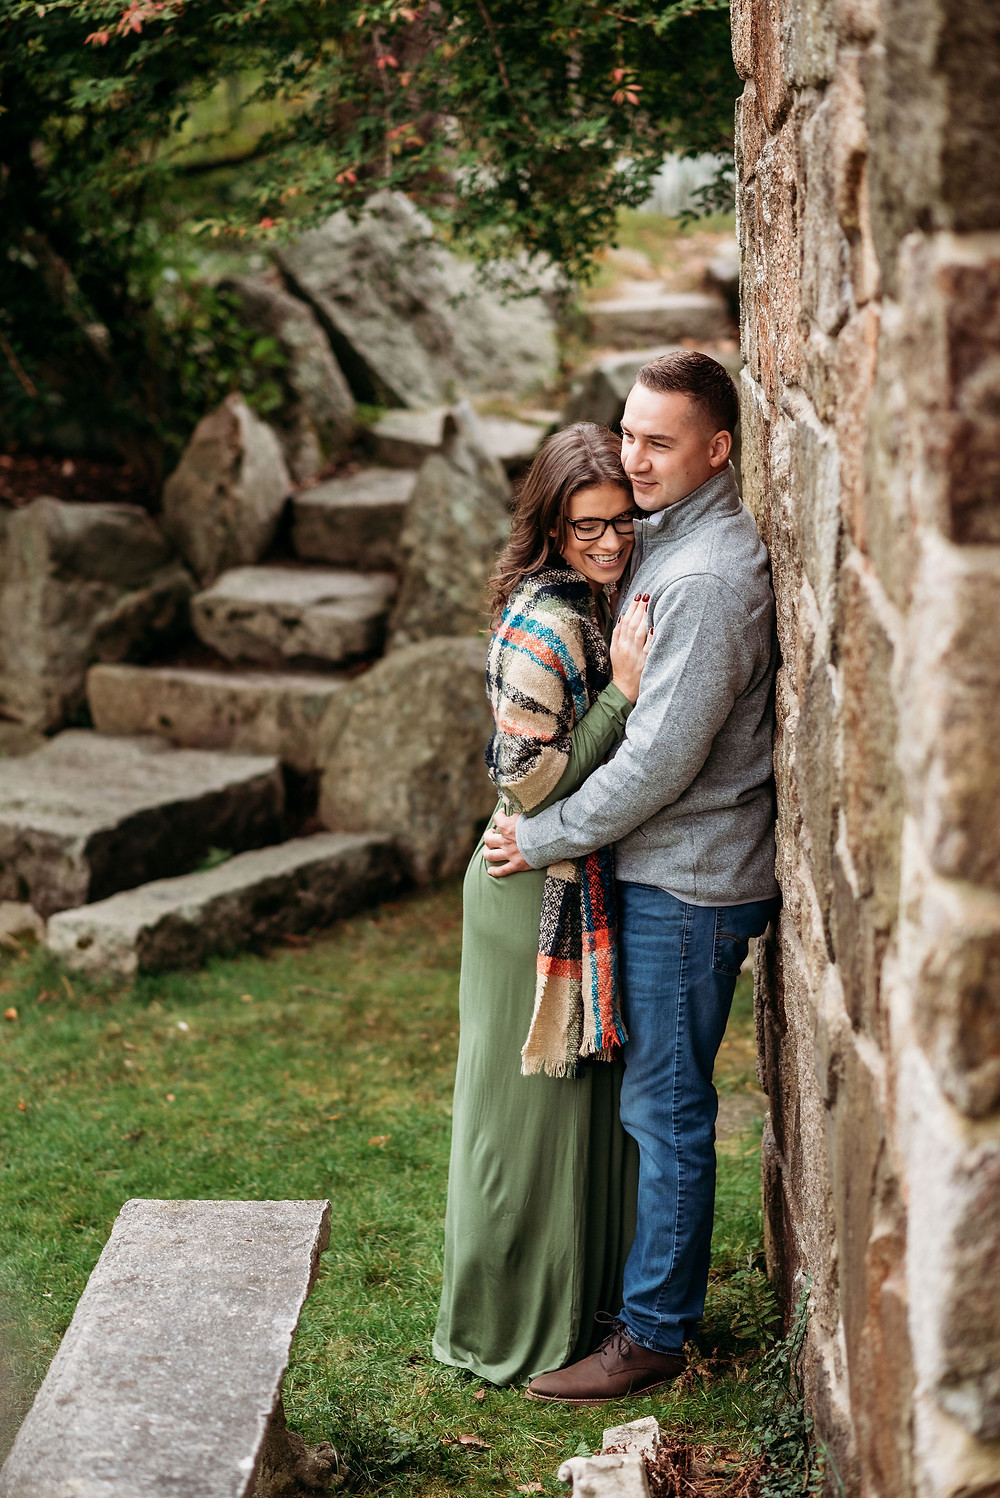 guy's back is against stone wall. girl is leaning on him so they are chest to chest. she's smiling big and looking at the ground. he is looking over her head